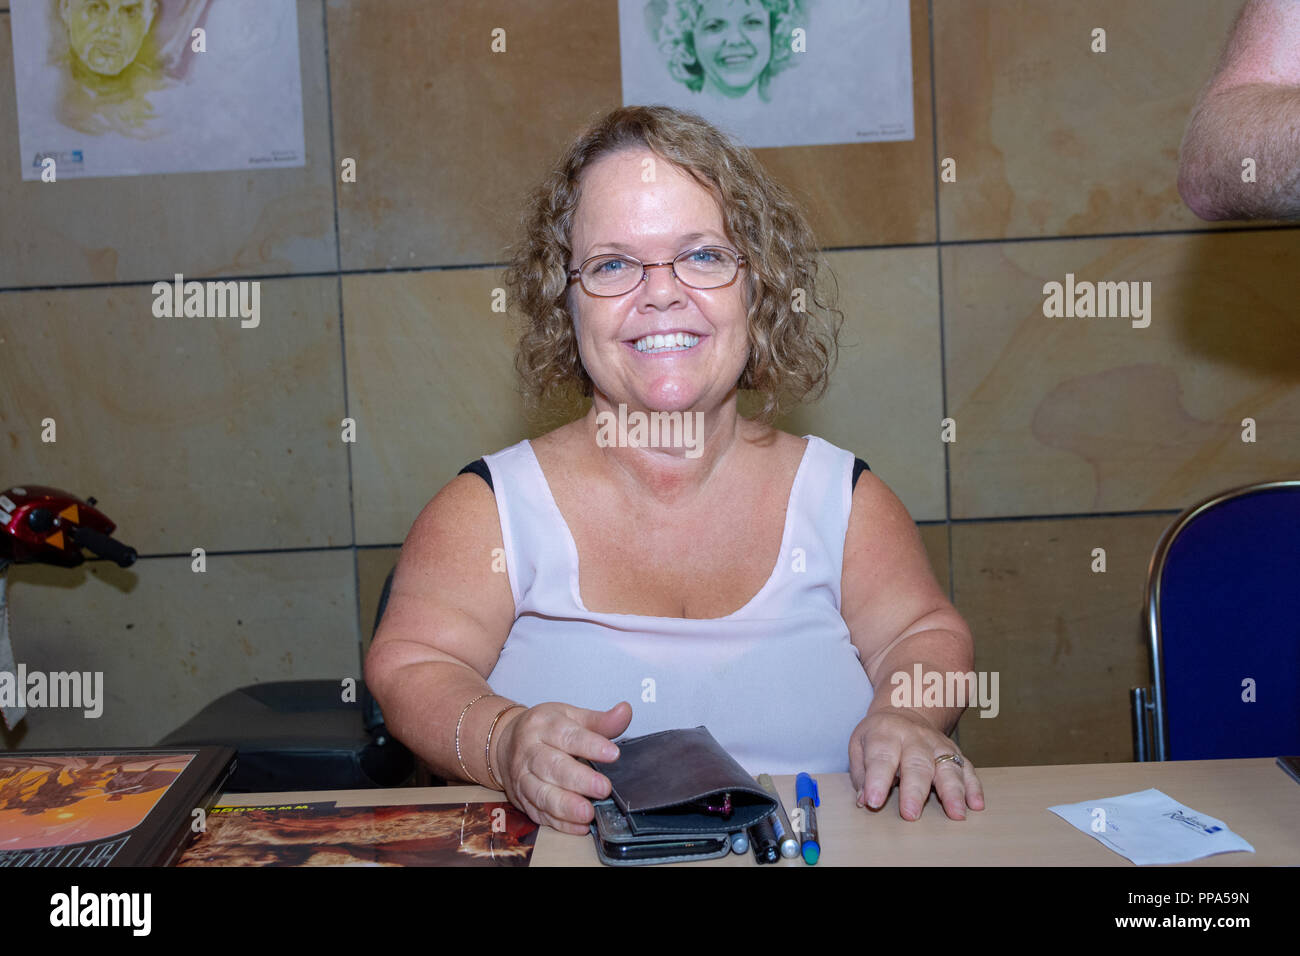 FUERTH, Germany - September 22nd 2018: Katie Purvis (*1967, actress - Maternal Ewok in Star Wars: Return of the Jedi) at Noris Force Con 5, a three da - Stock Image